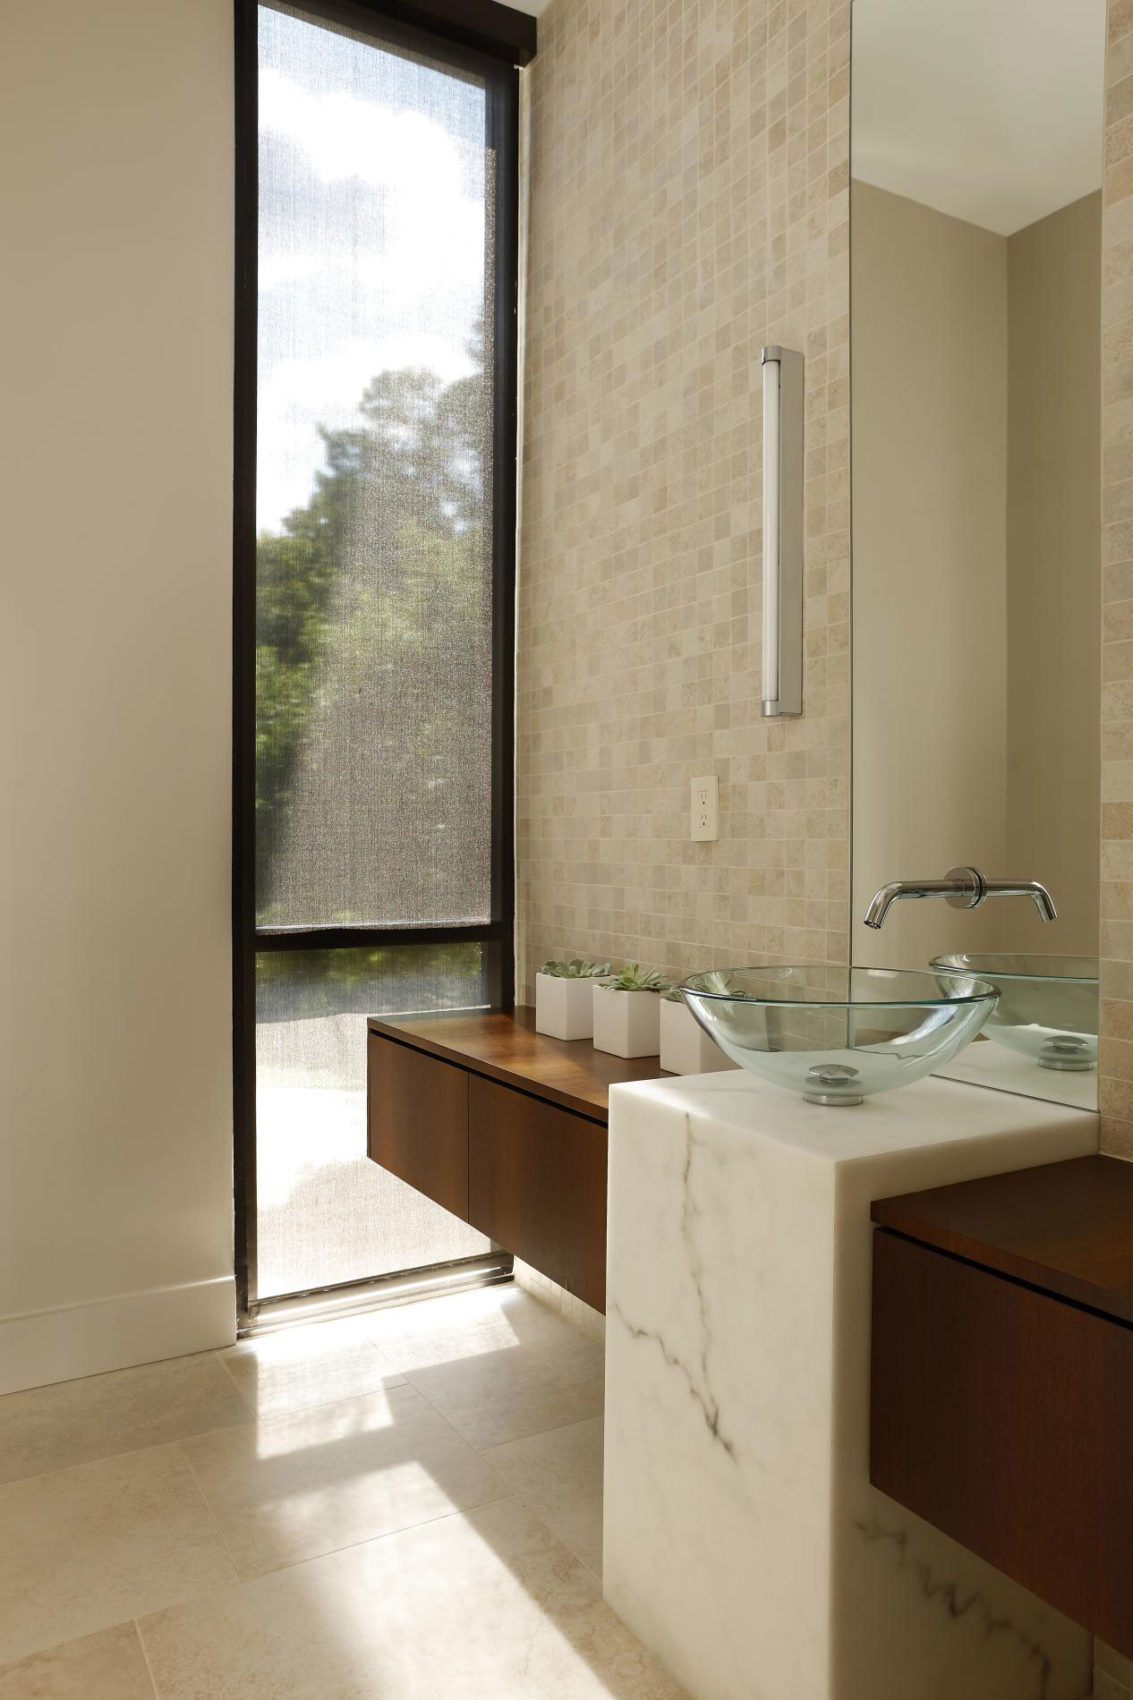 Ansley Modern Interior by Habachy Designs (9)